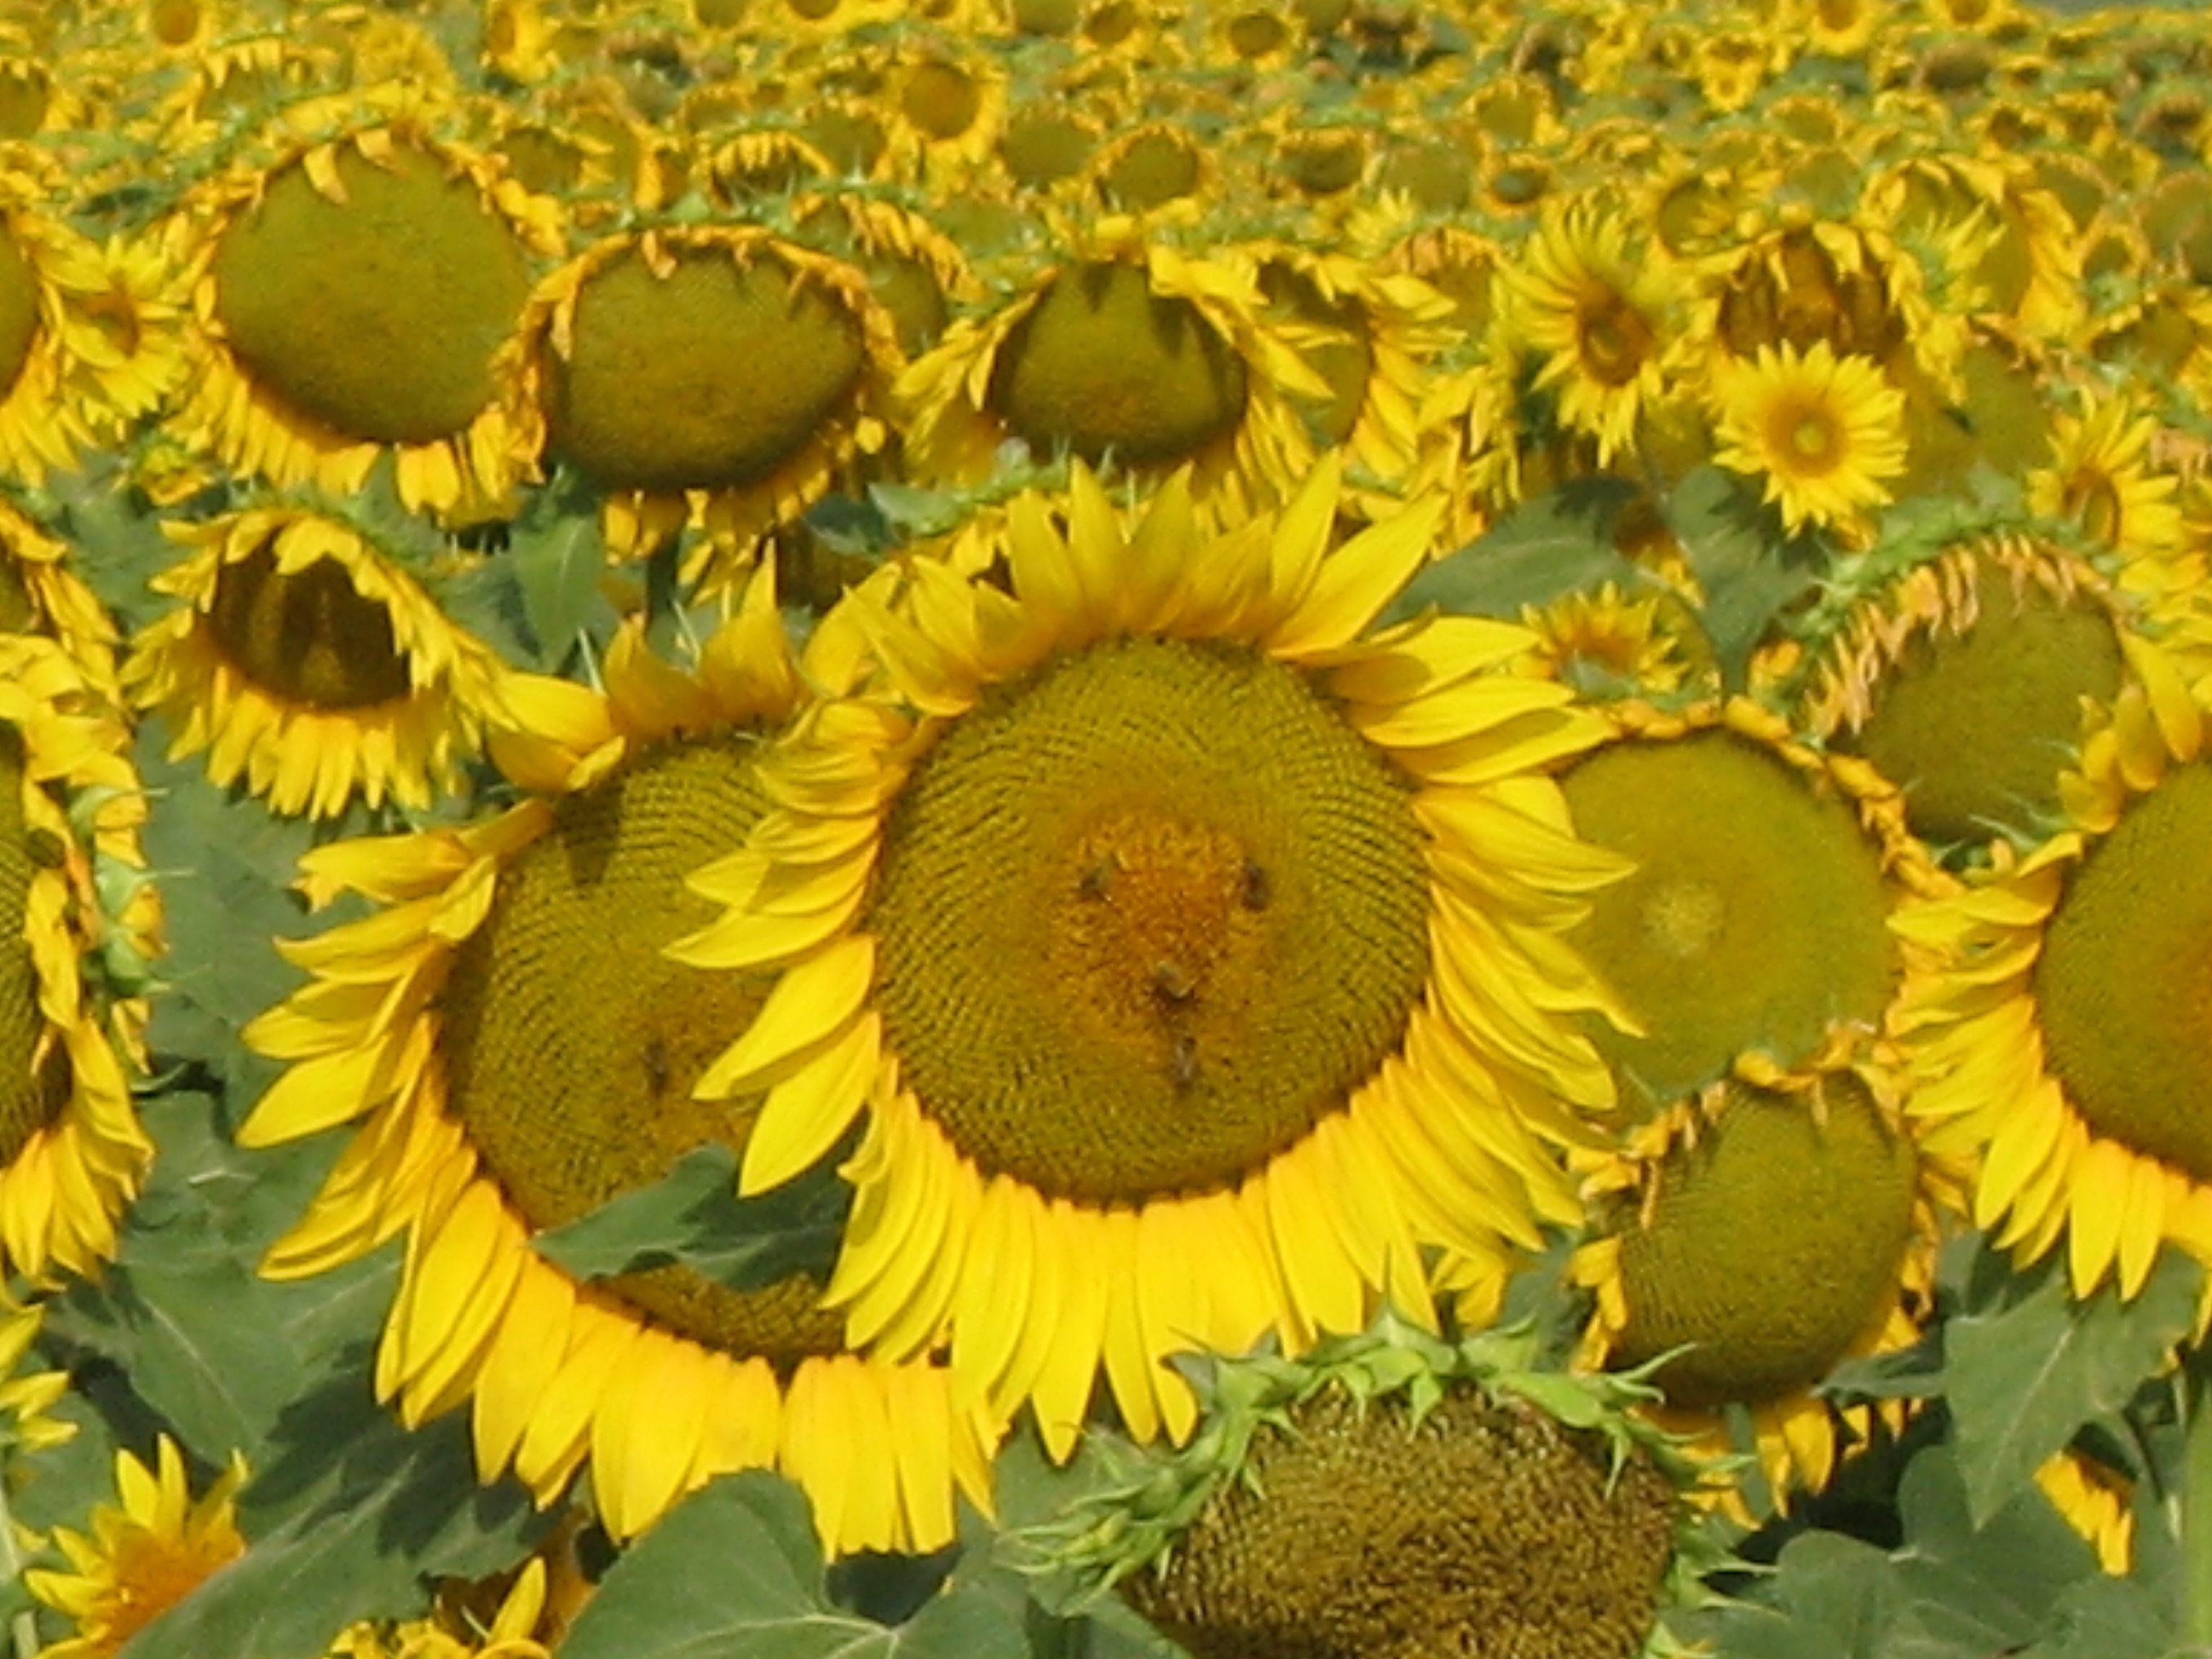 Sunflowers for pollinators